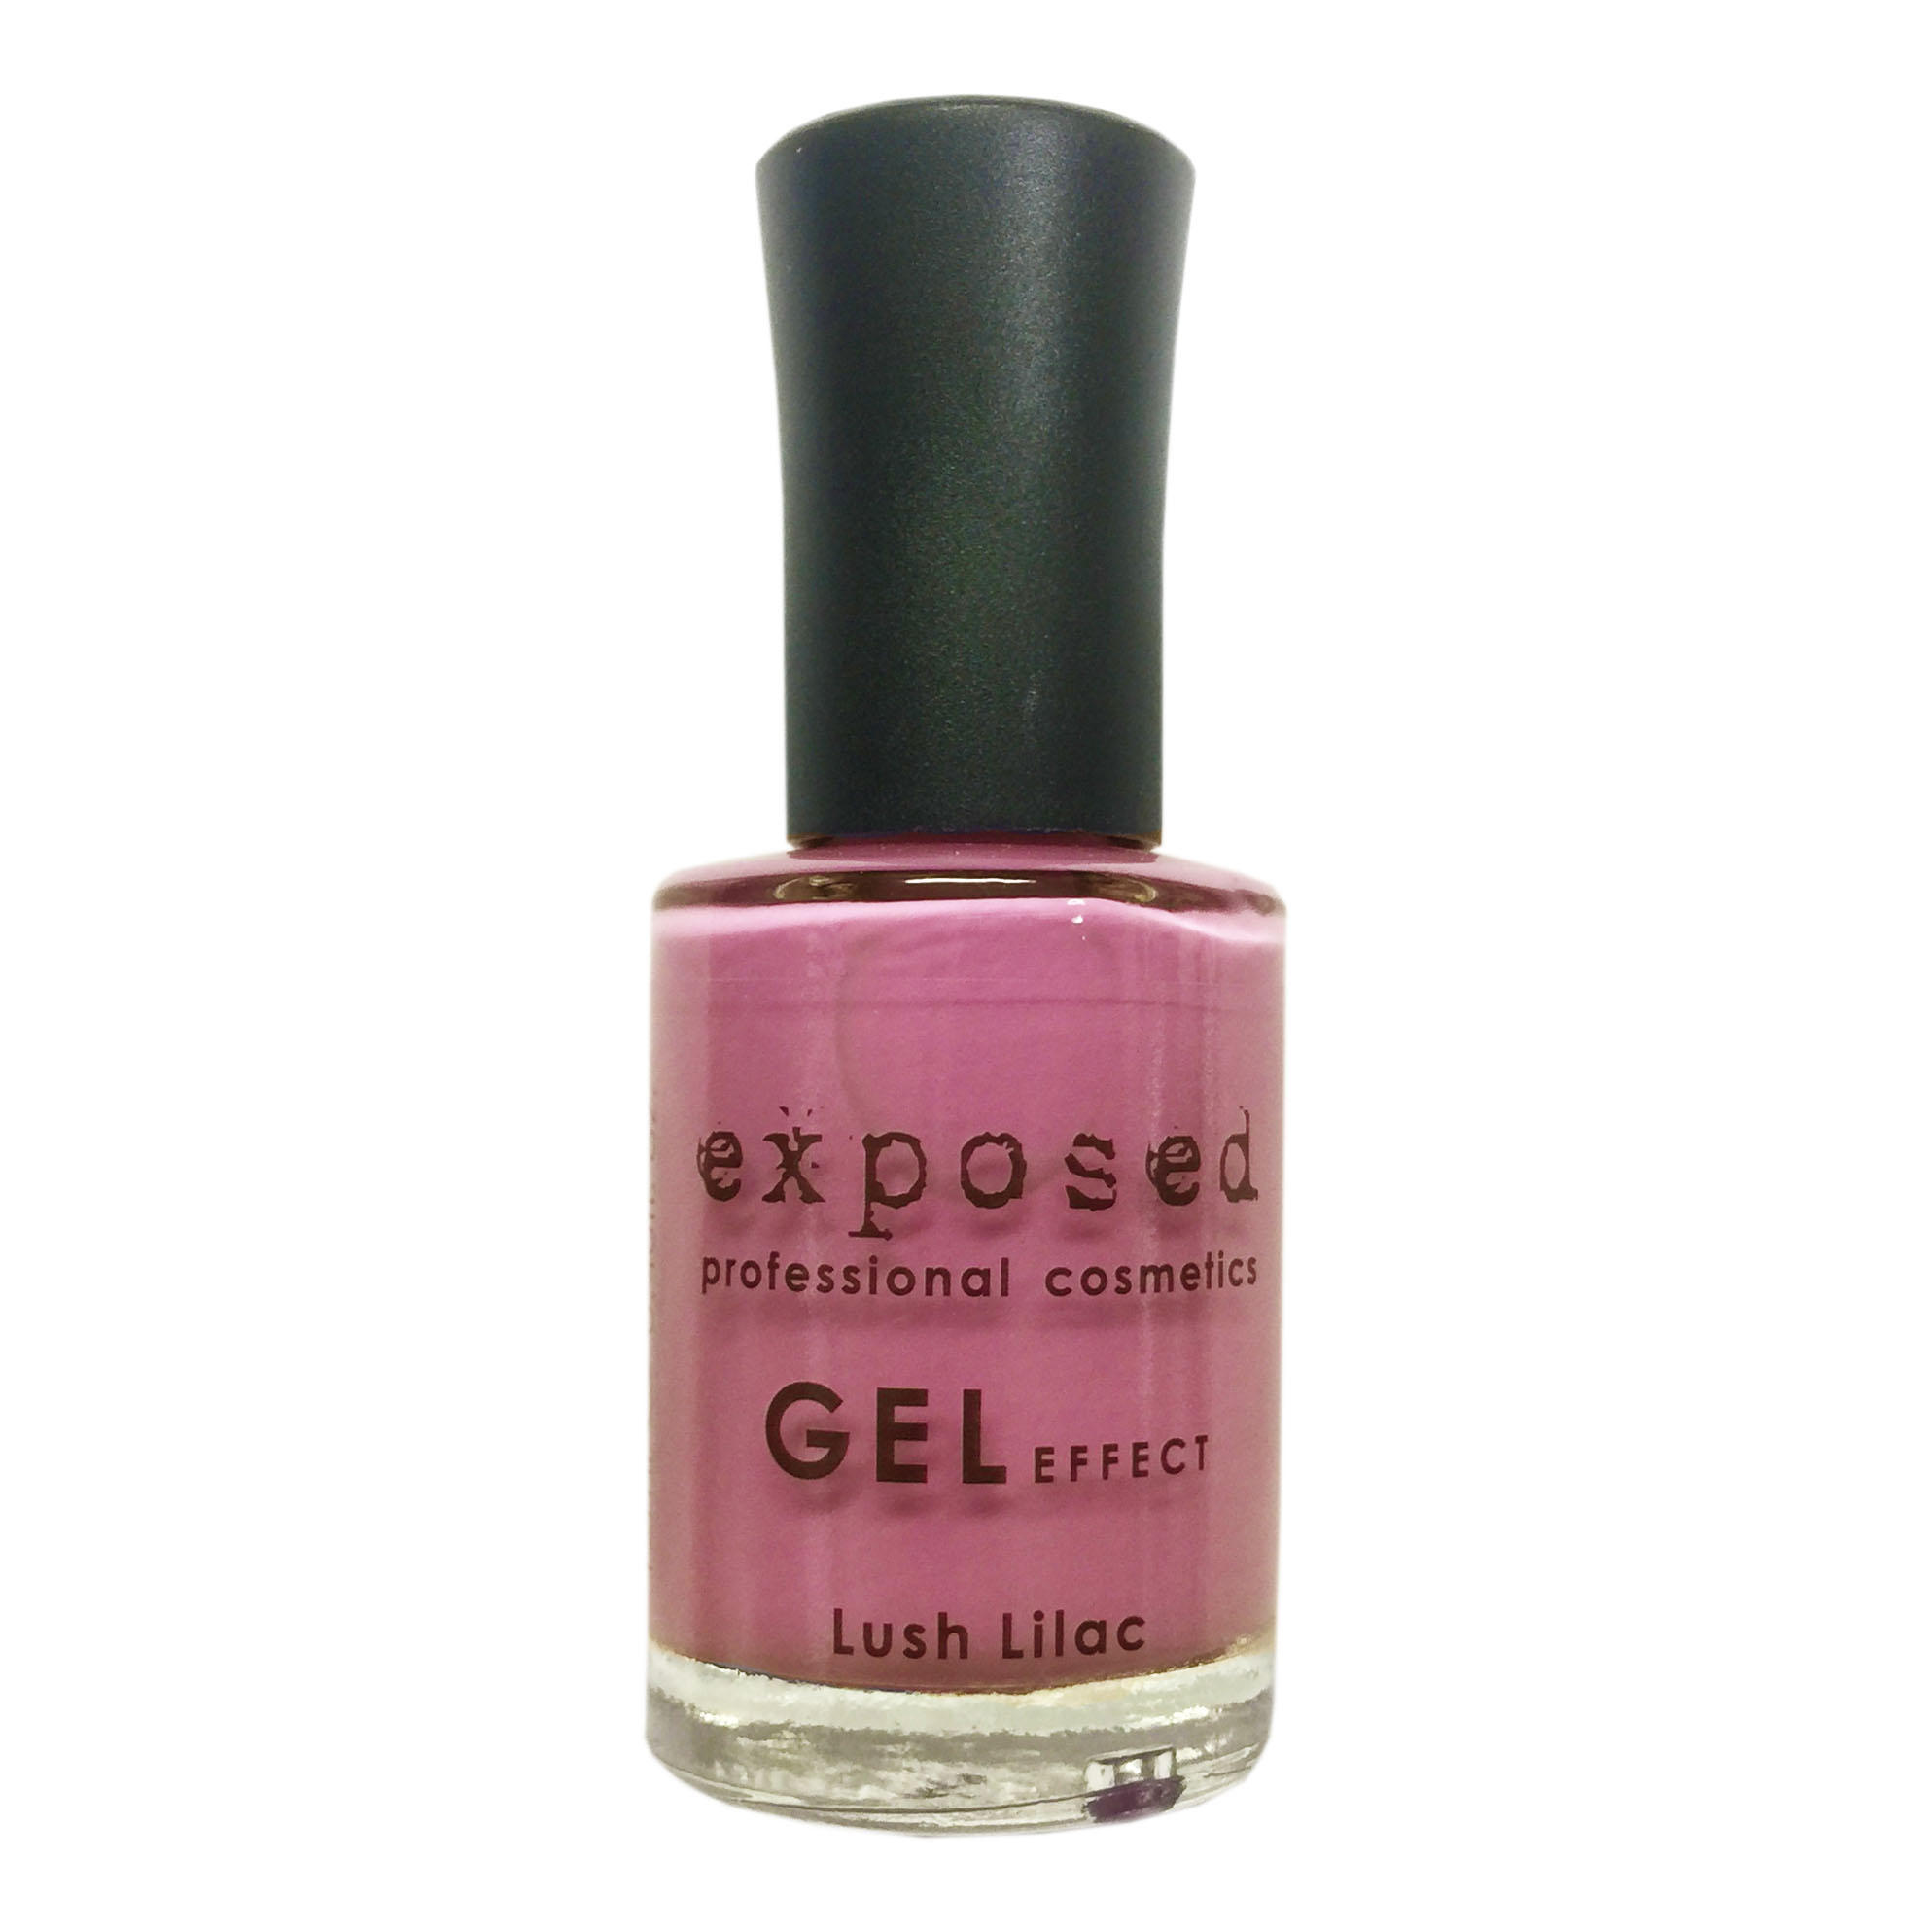 Exposed Cosmetics Gel Effect Nail Lacquer – Lush Lilac - Just Essentials